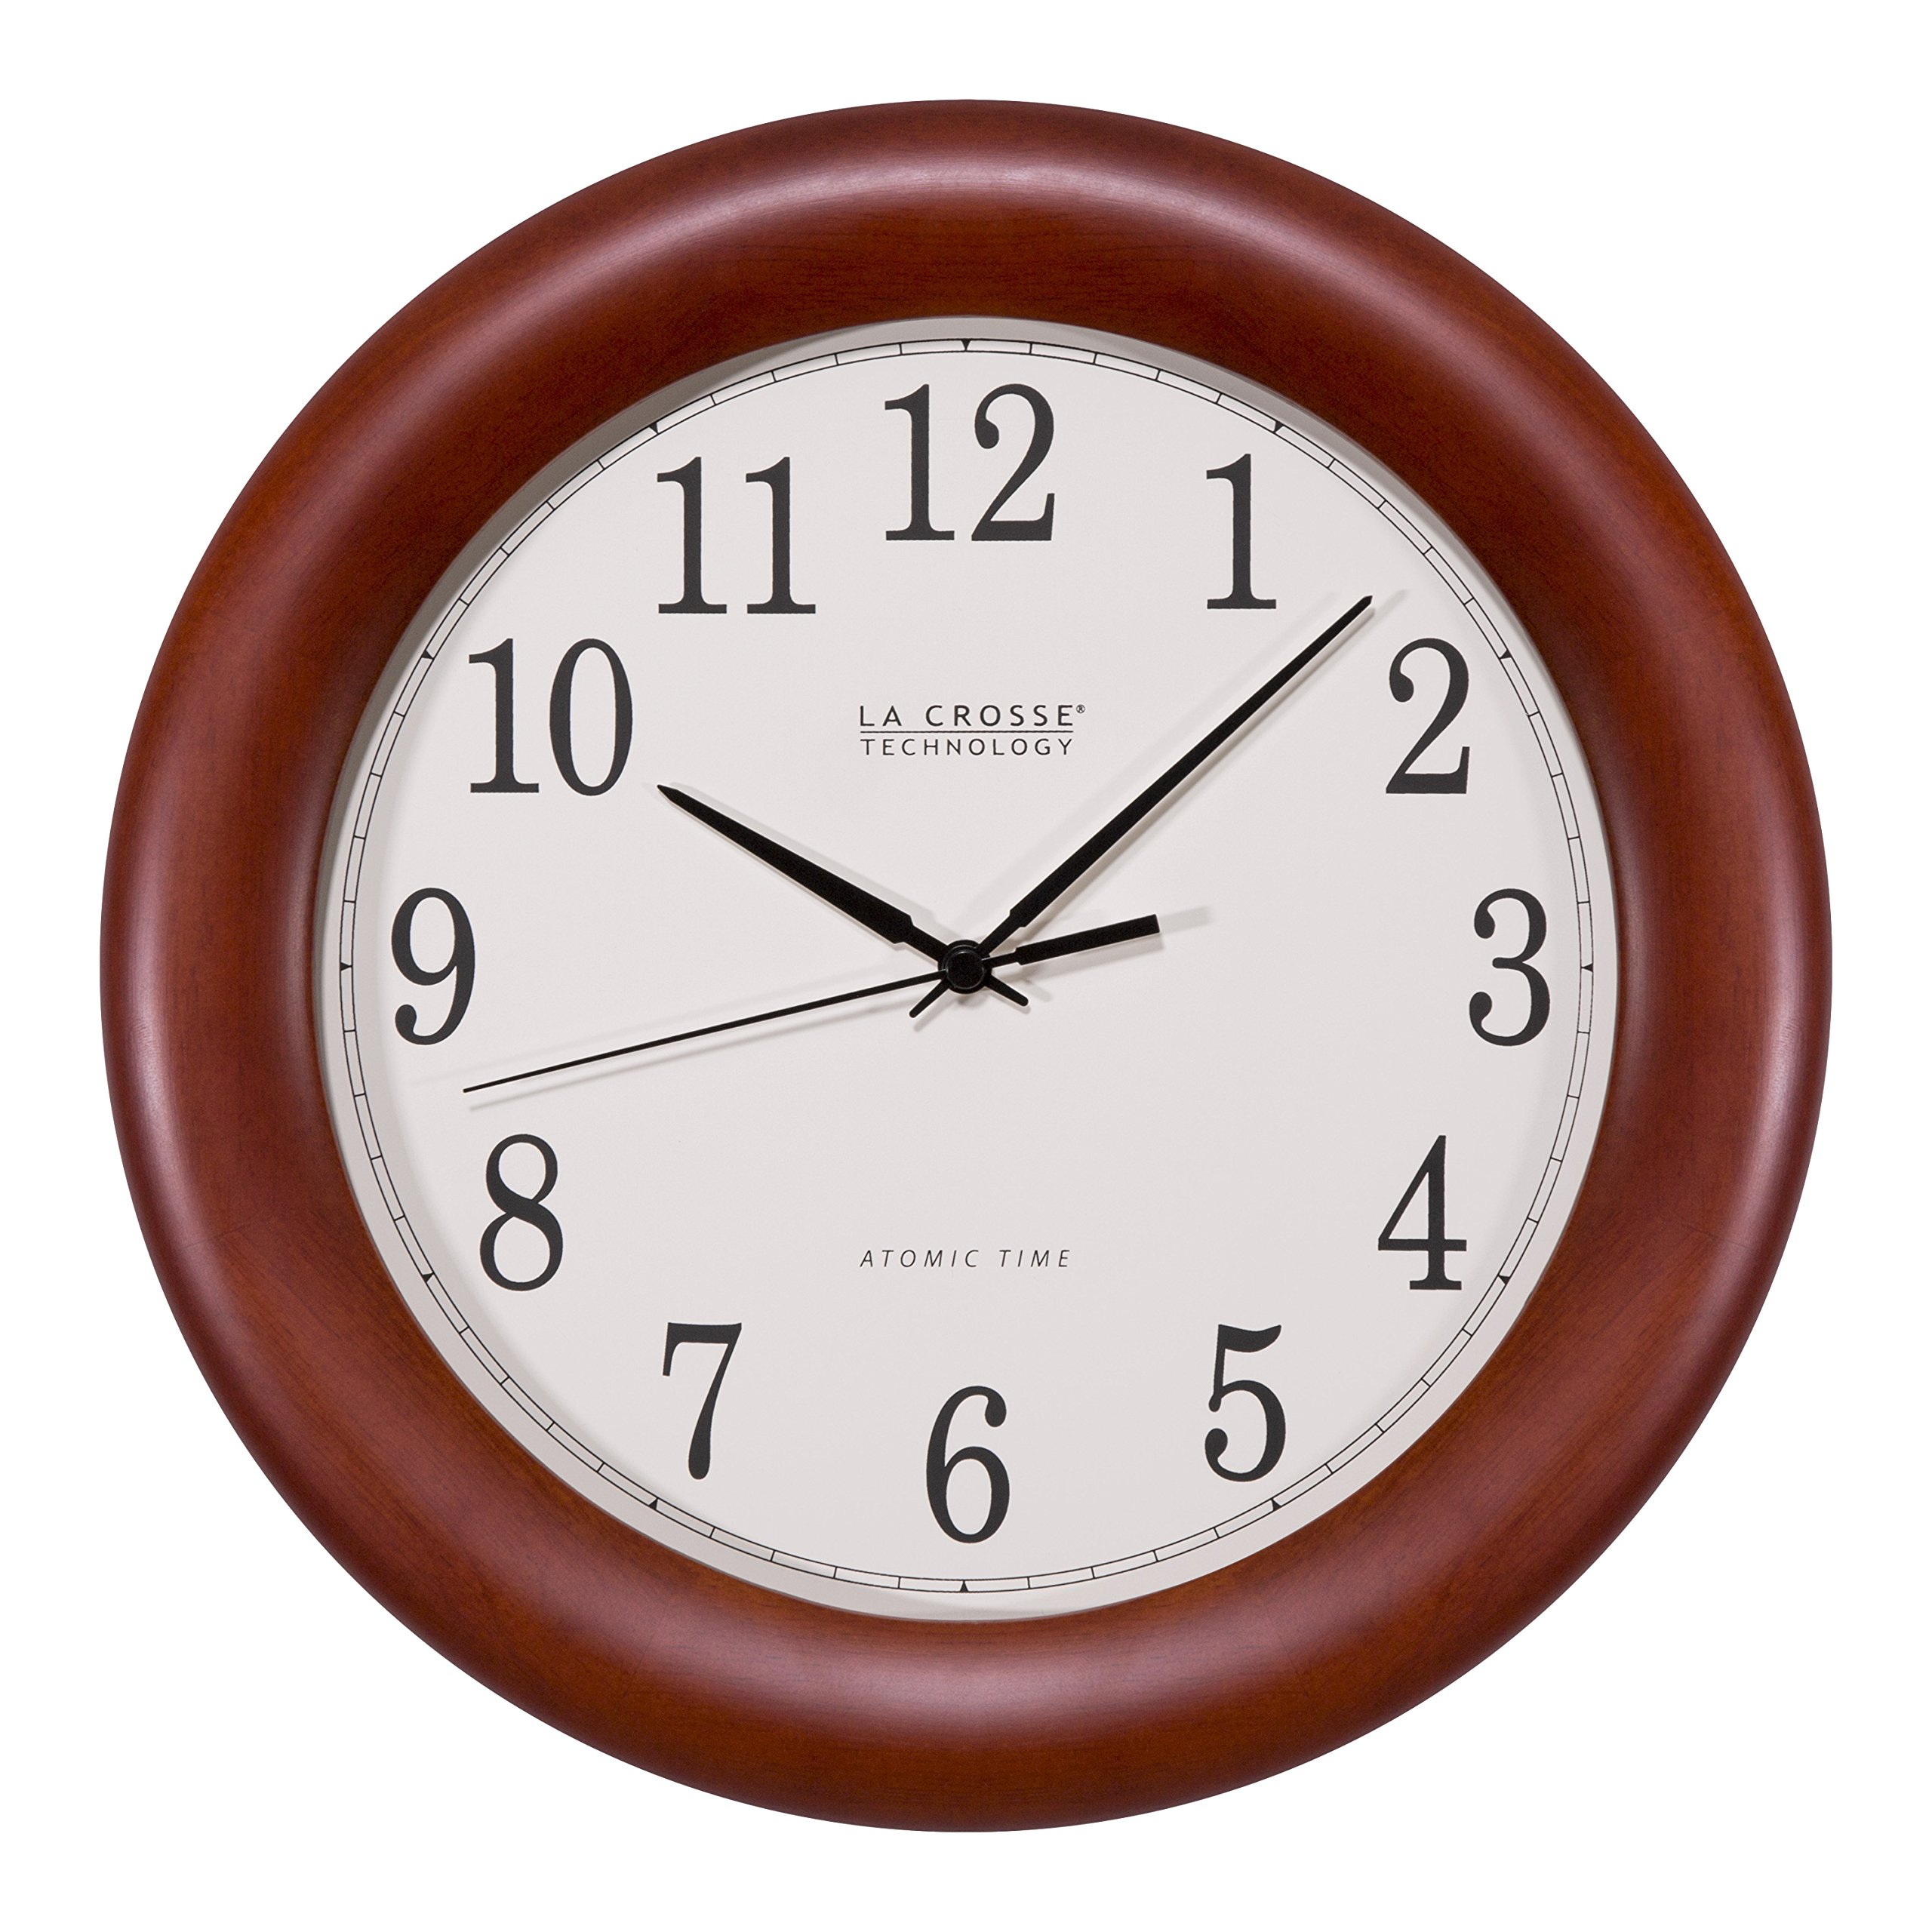 La Crosse Technology WT-3122A 12.5 Inch Cherry Wood Atomic Analog Clock